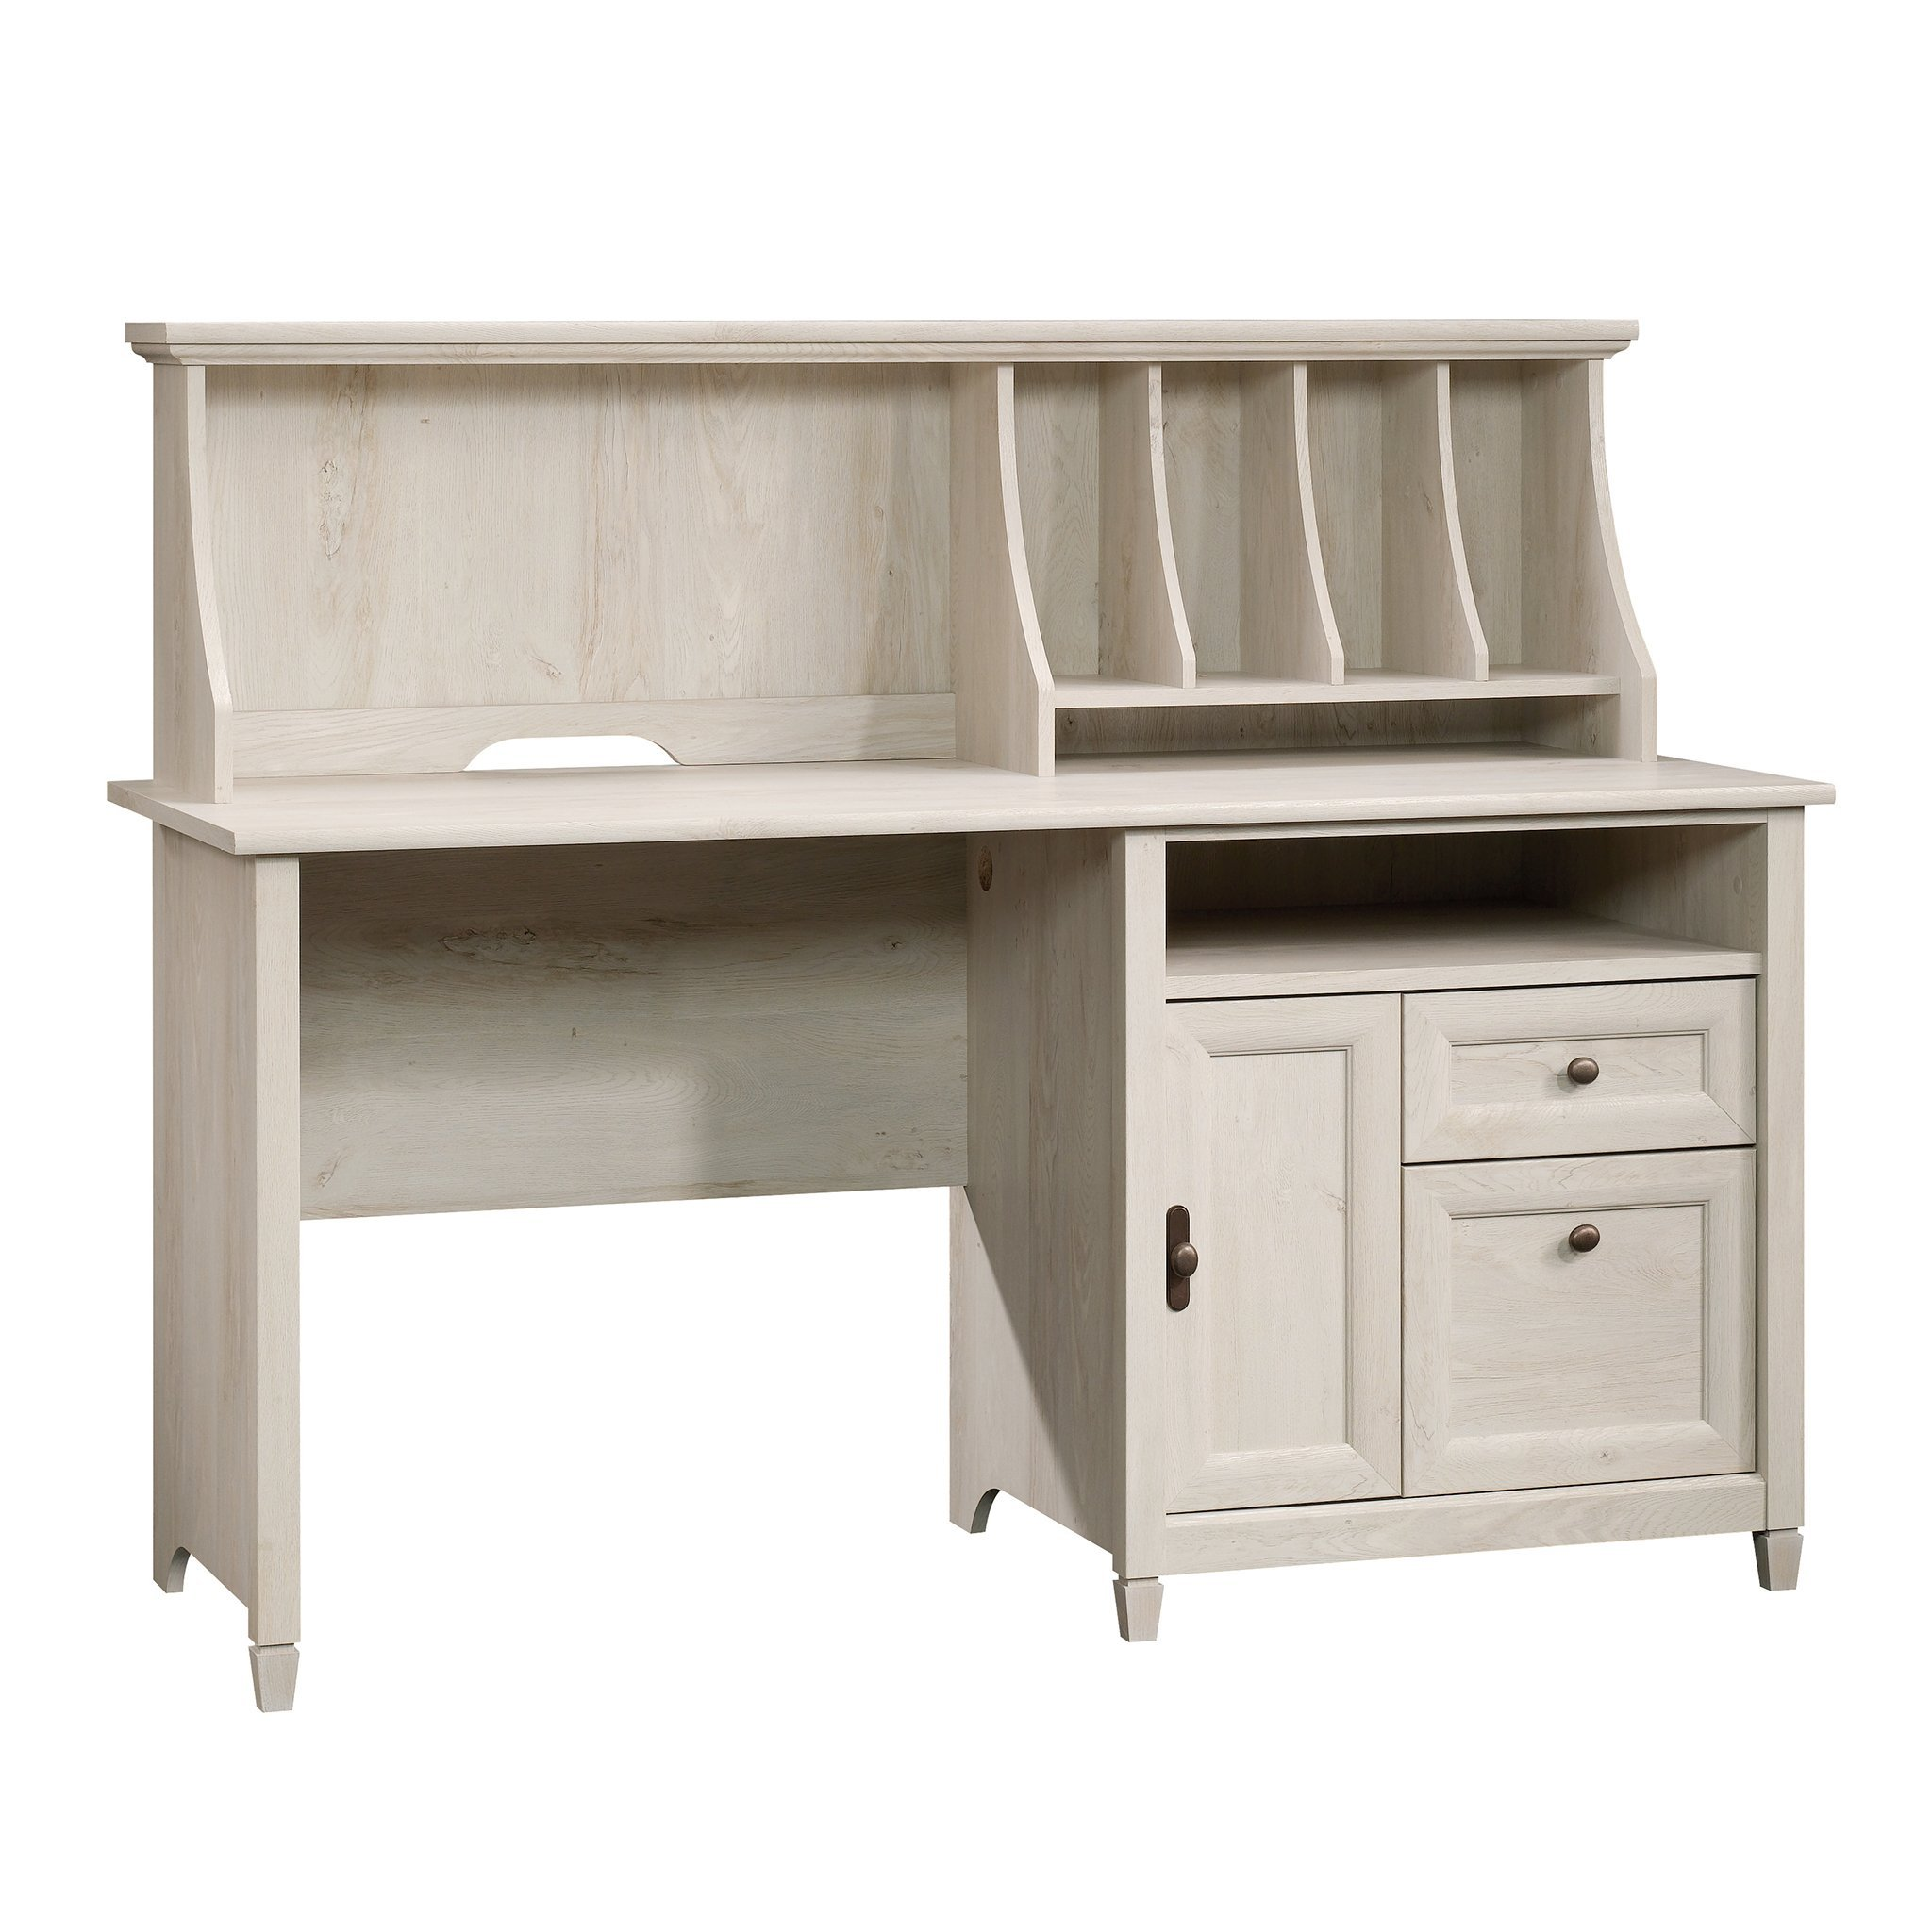 Sauder Edge Water Computer Desk With Hutch, L: 59.06'' x W: 23.307'' x H: 46.417'', Chalked Chestnut finish by Sauder